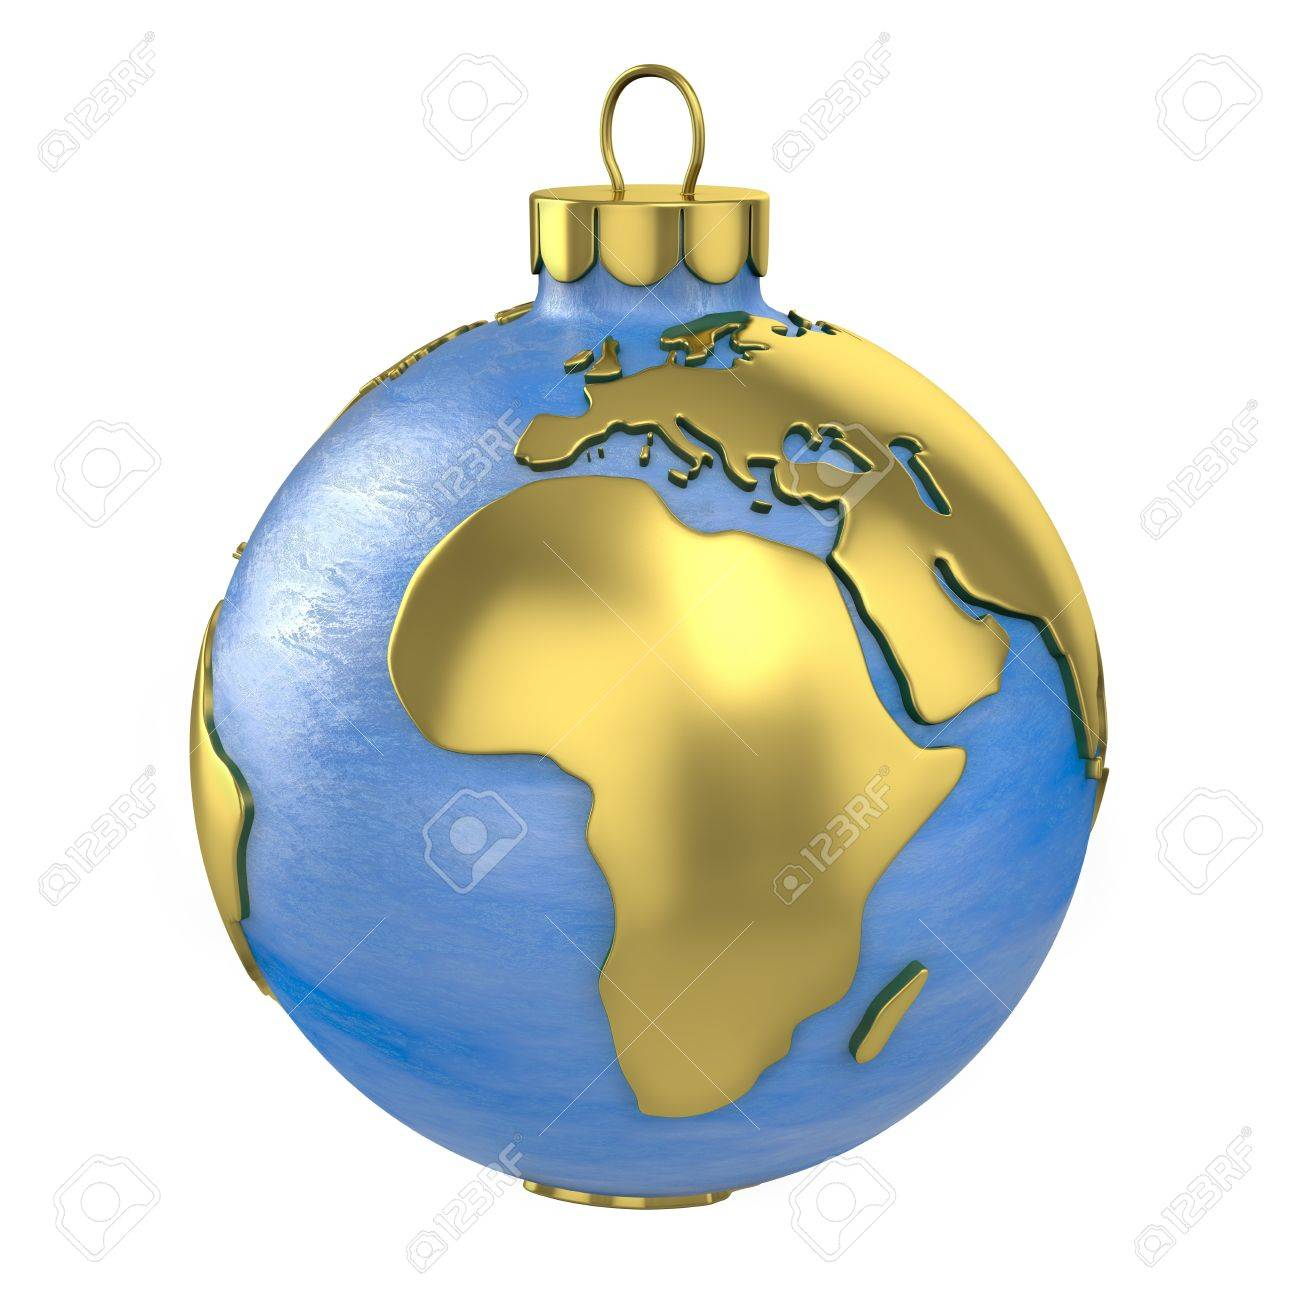 World globe christmas ornaments - Bauble World Christmas Ball Shaped As Globe Or Planet Isolated On White Background Africa